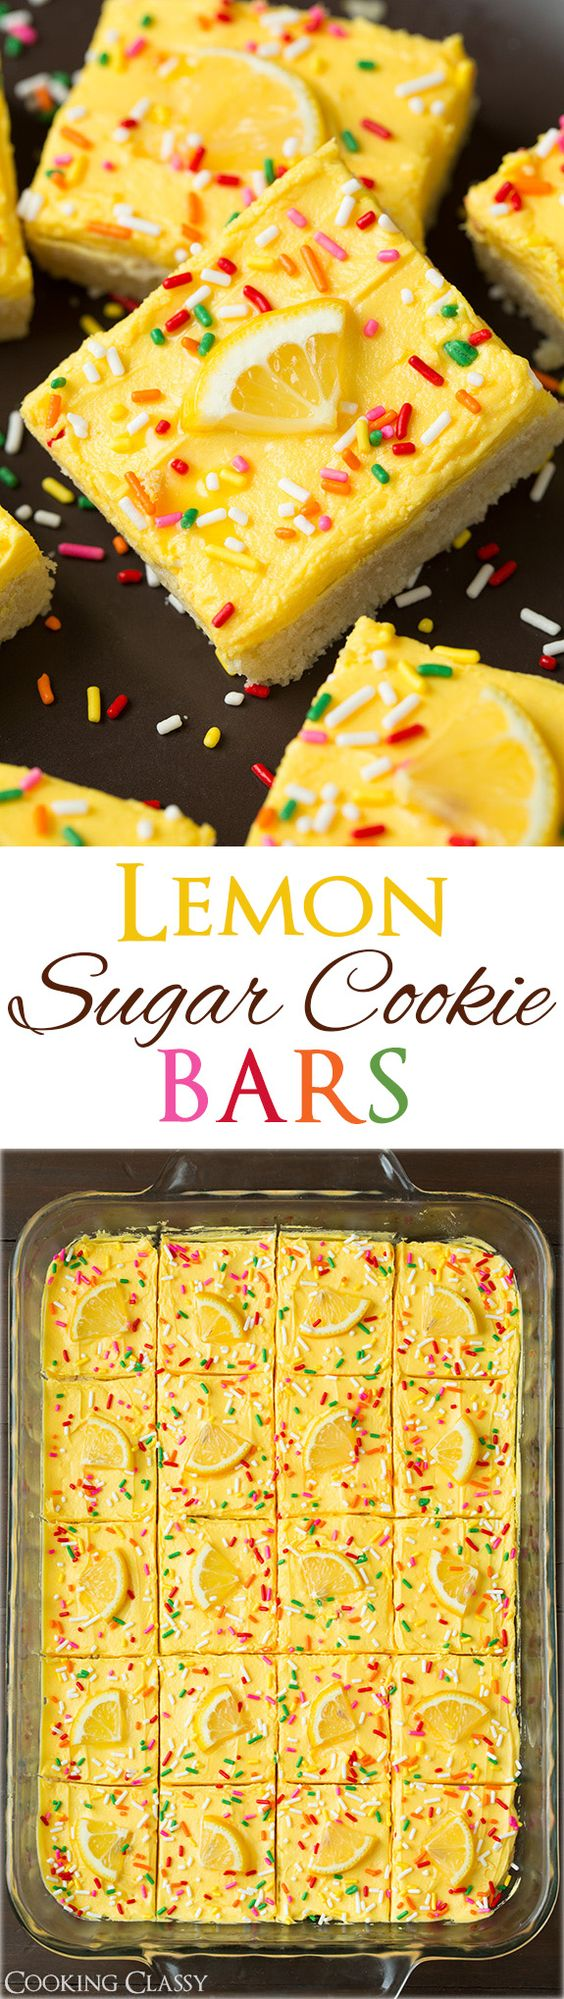 Lemon Sugar Cookie Dessert Bars Recipe via Cooking Classy - these are one of the BEST summer treats! They are so lemony and refreshing and they are as soft as lofthouse cookies. #dessertbars #cookiebars #barsrecipes #dessertforacrowd #partydesserts #christmasdesserts #holidaydesserts #onepandesserts